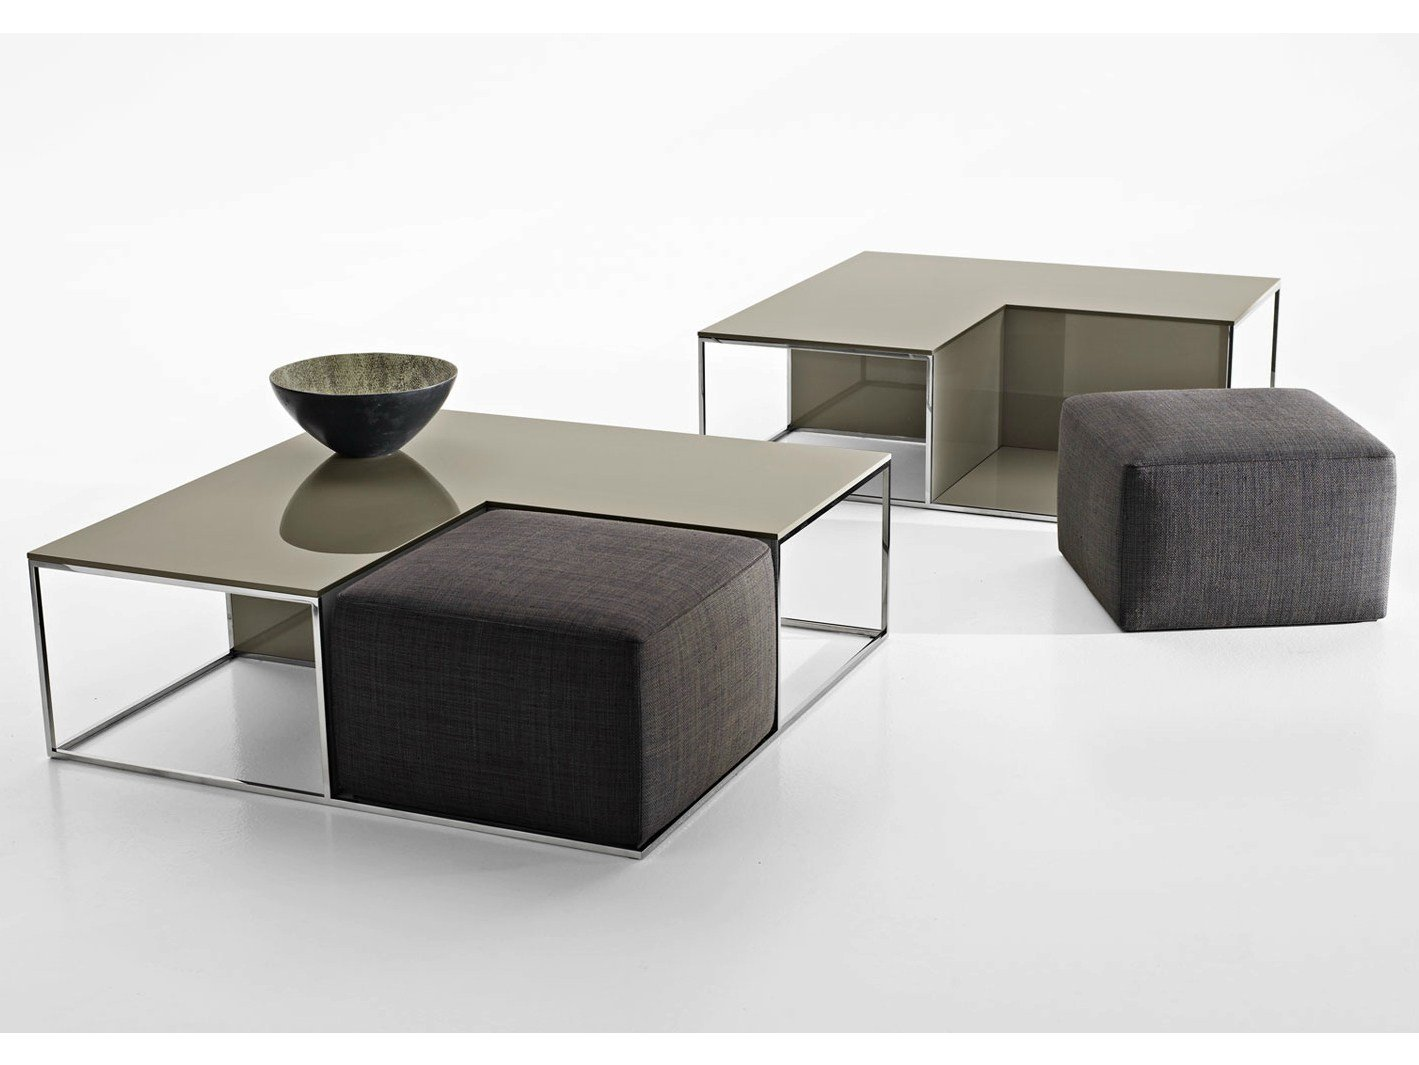 Pouf coffee table area by b b italia design paolo piva - Table basse pouf integre ...